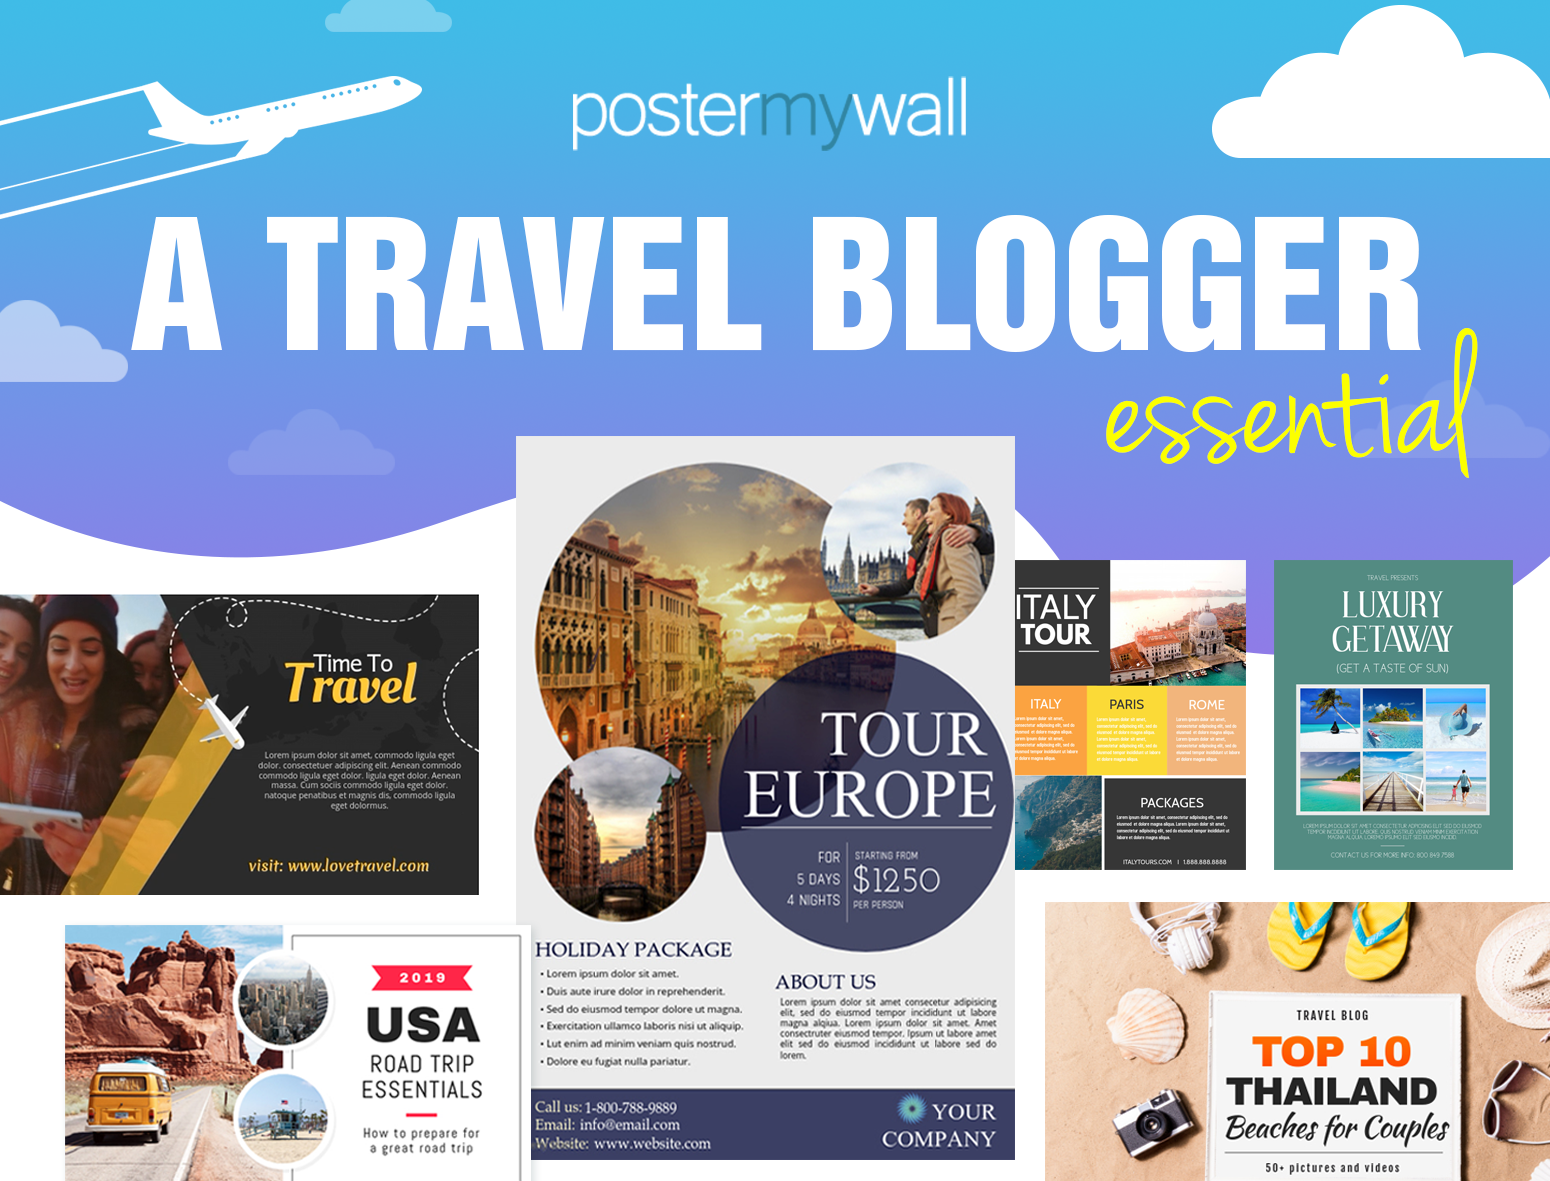 Create Stunning Visuals For Your Travel Blog With PosterMyWall